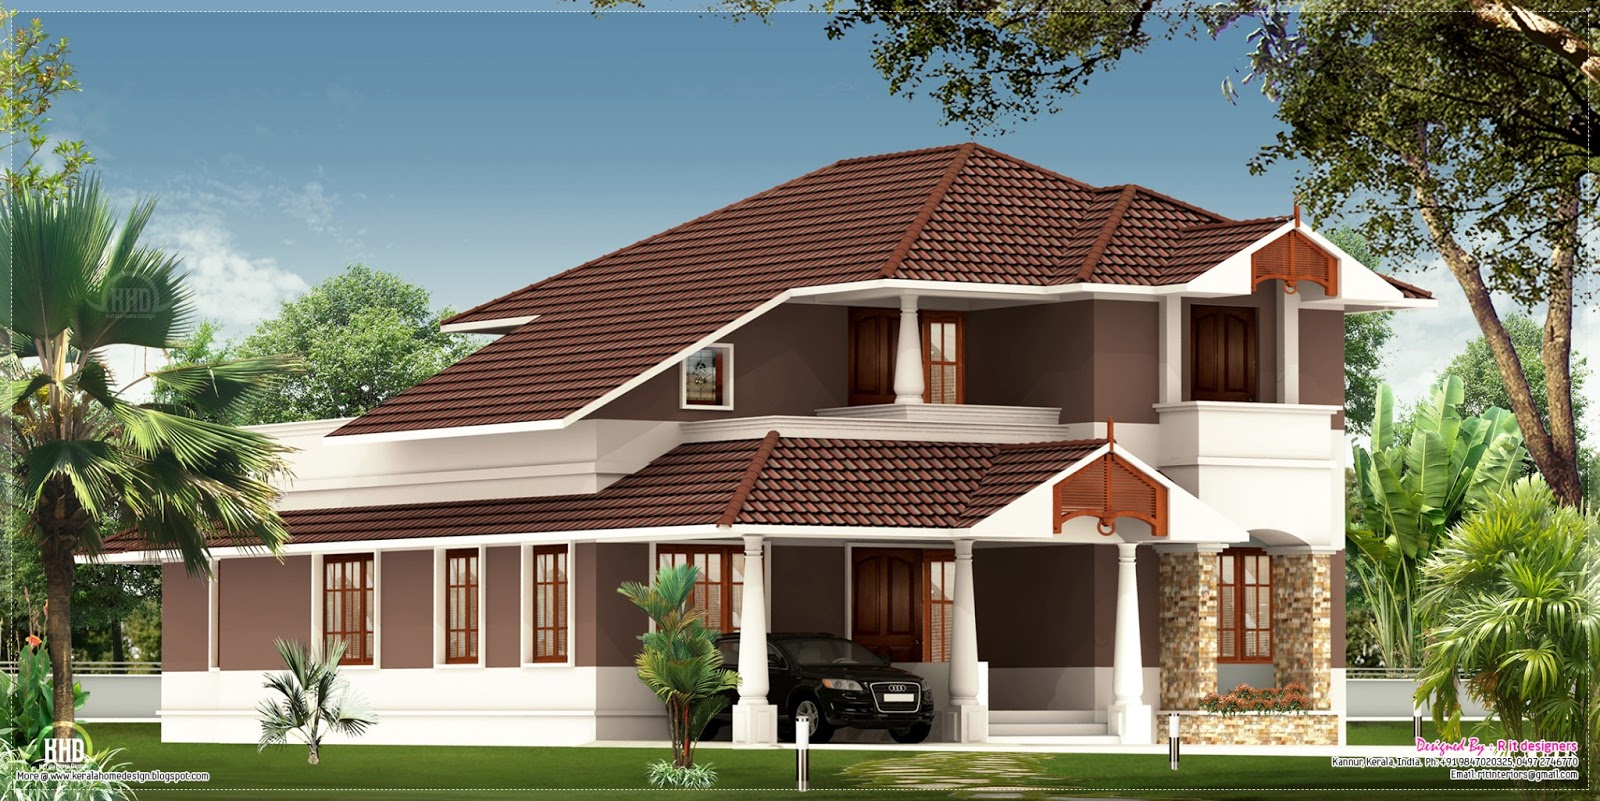 2100 house exterior design home kerala plans Kerala style house exterior designs